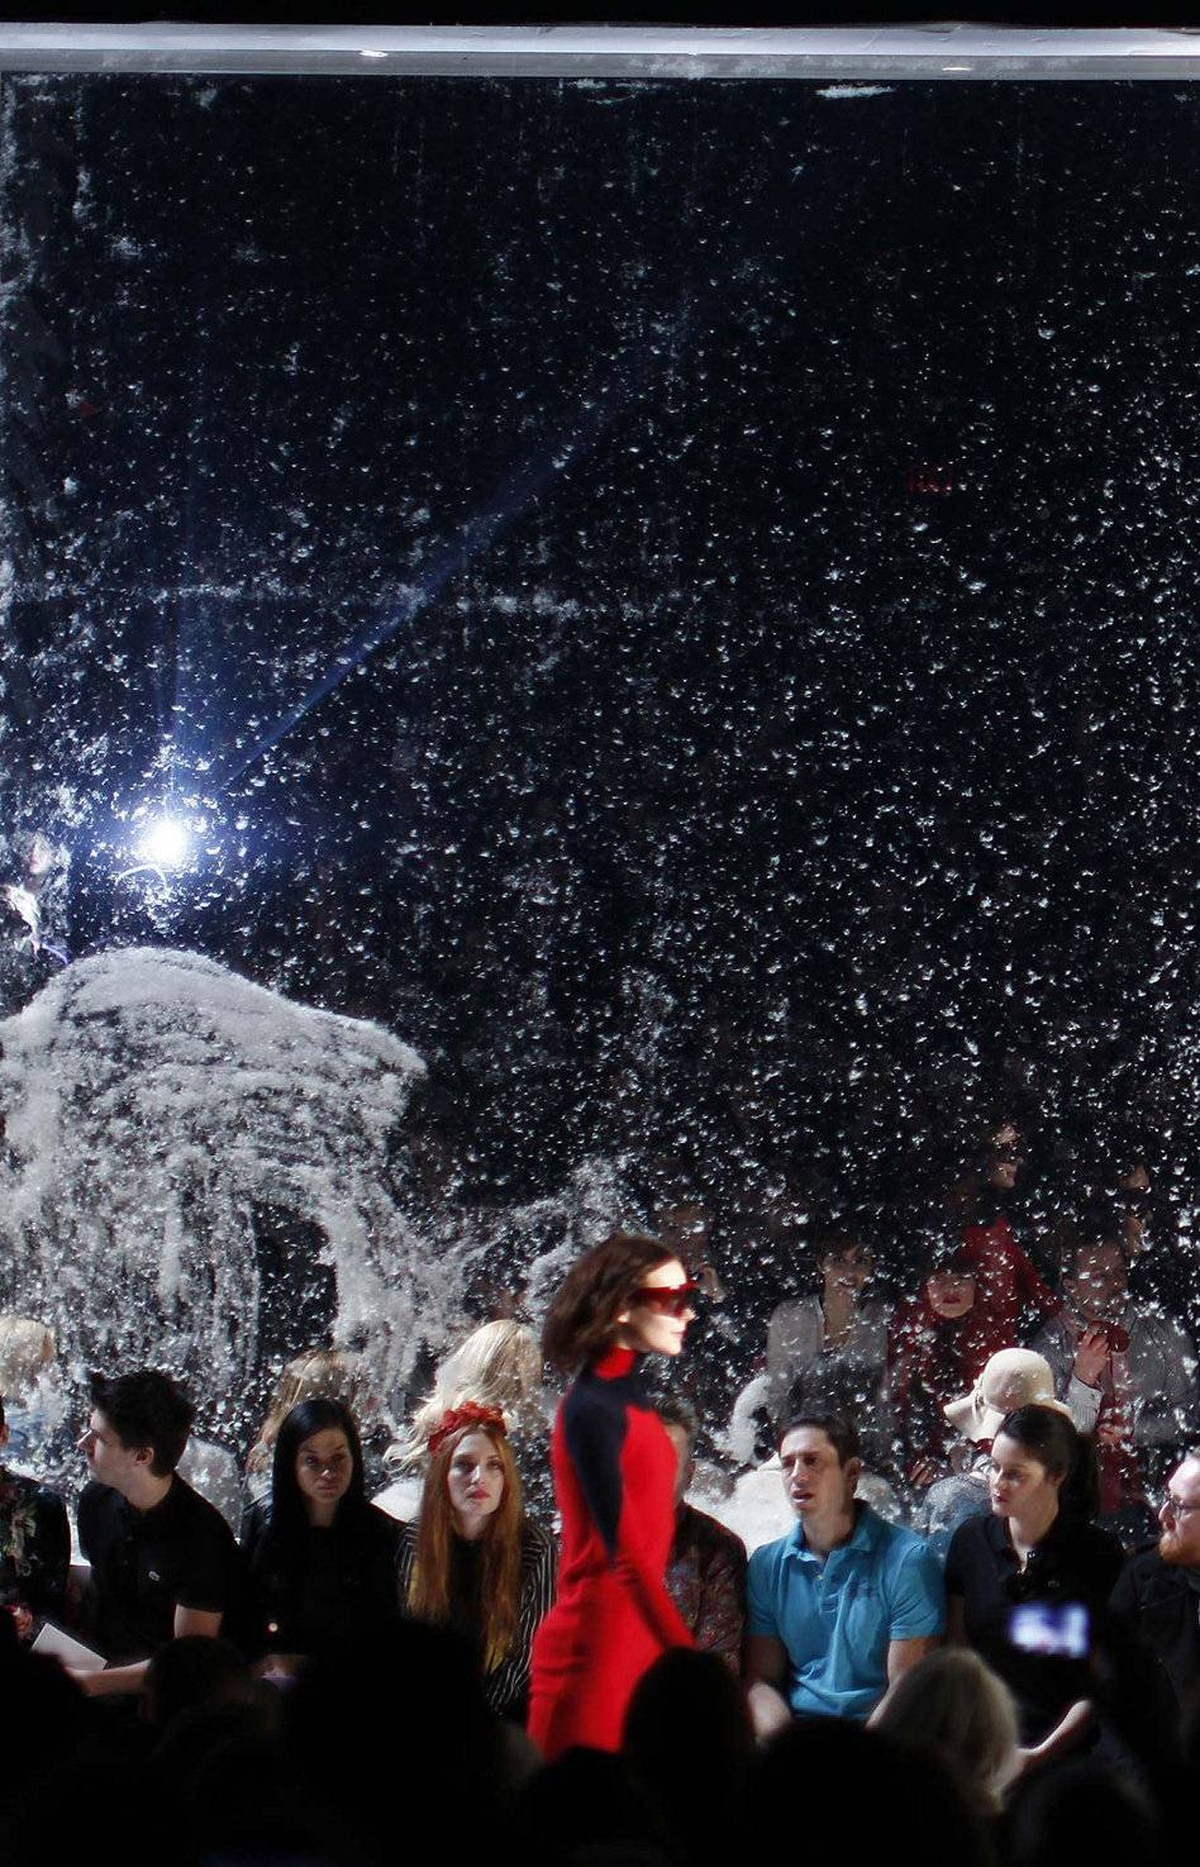 On Saturday, French brand Lacoste lined the runway with giant snow globe-like panels to set the stage for its haute sportif men's and women's show.